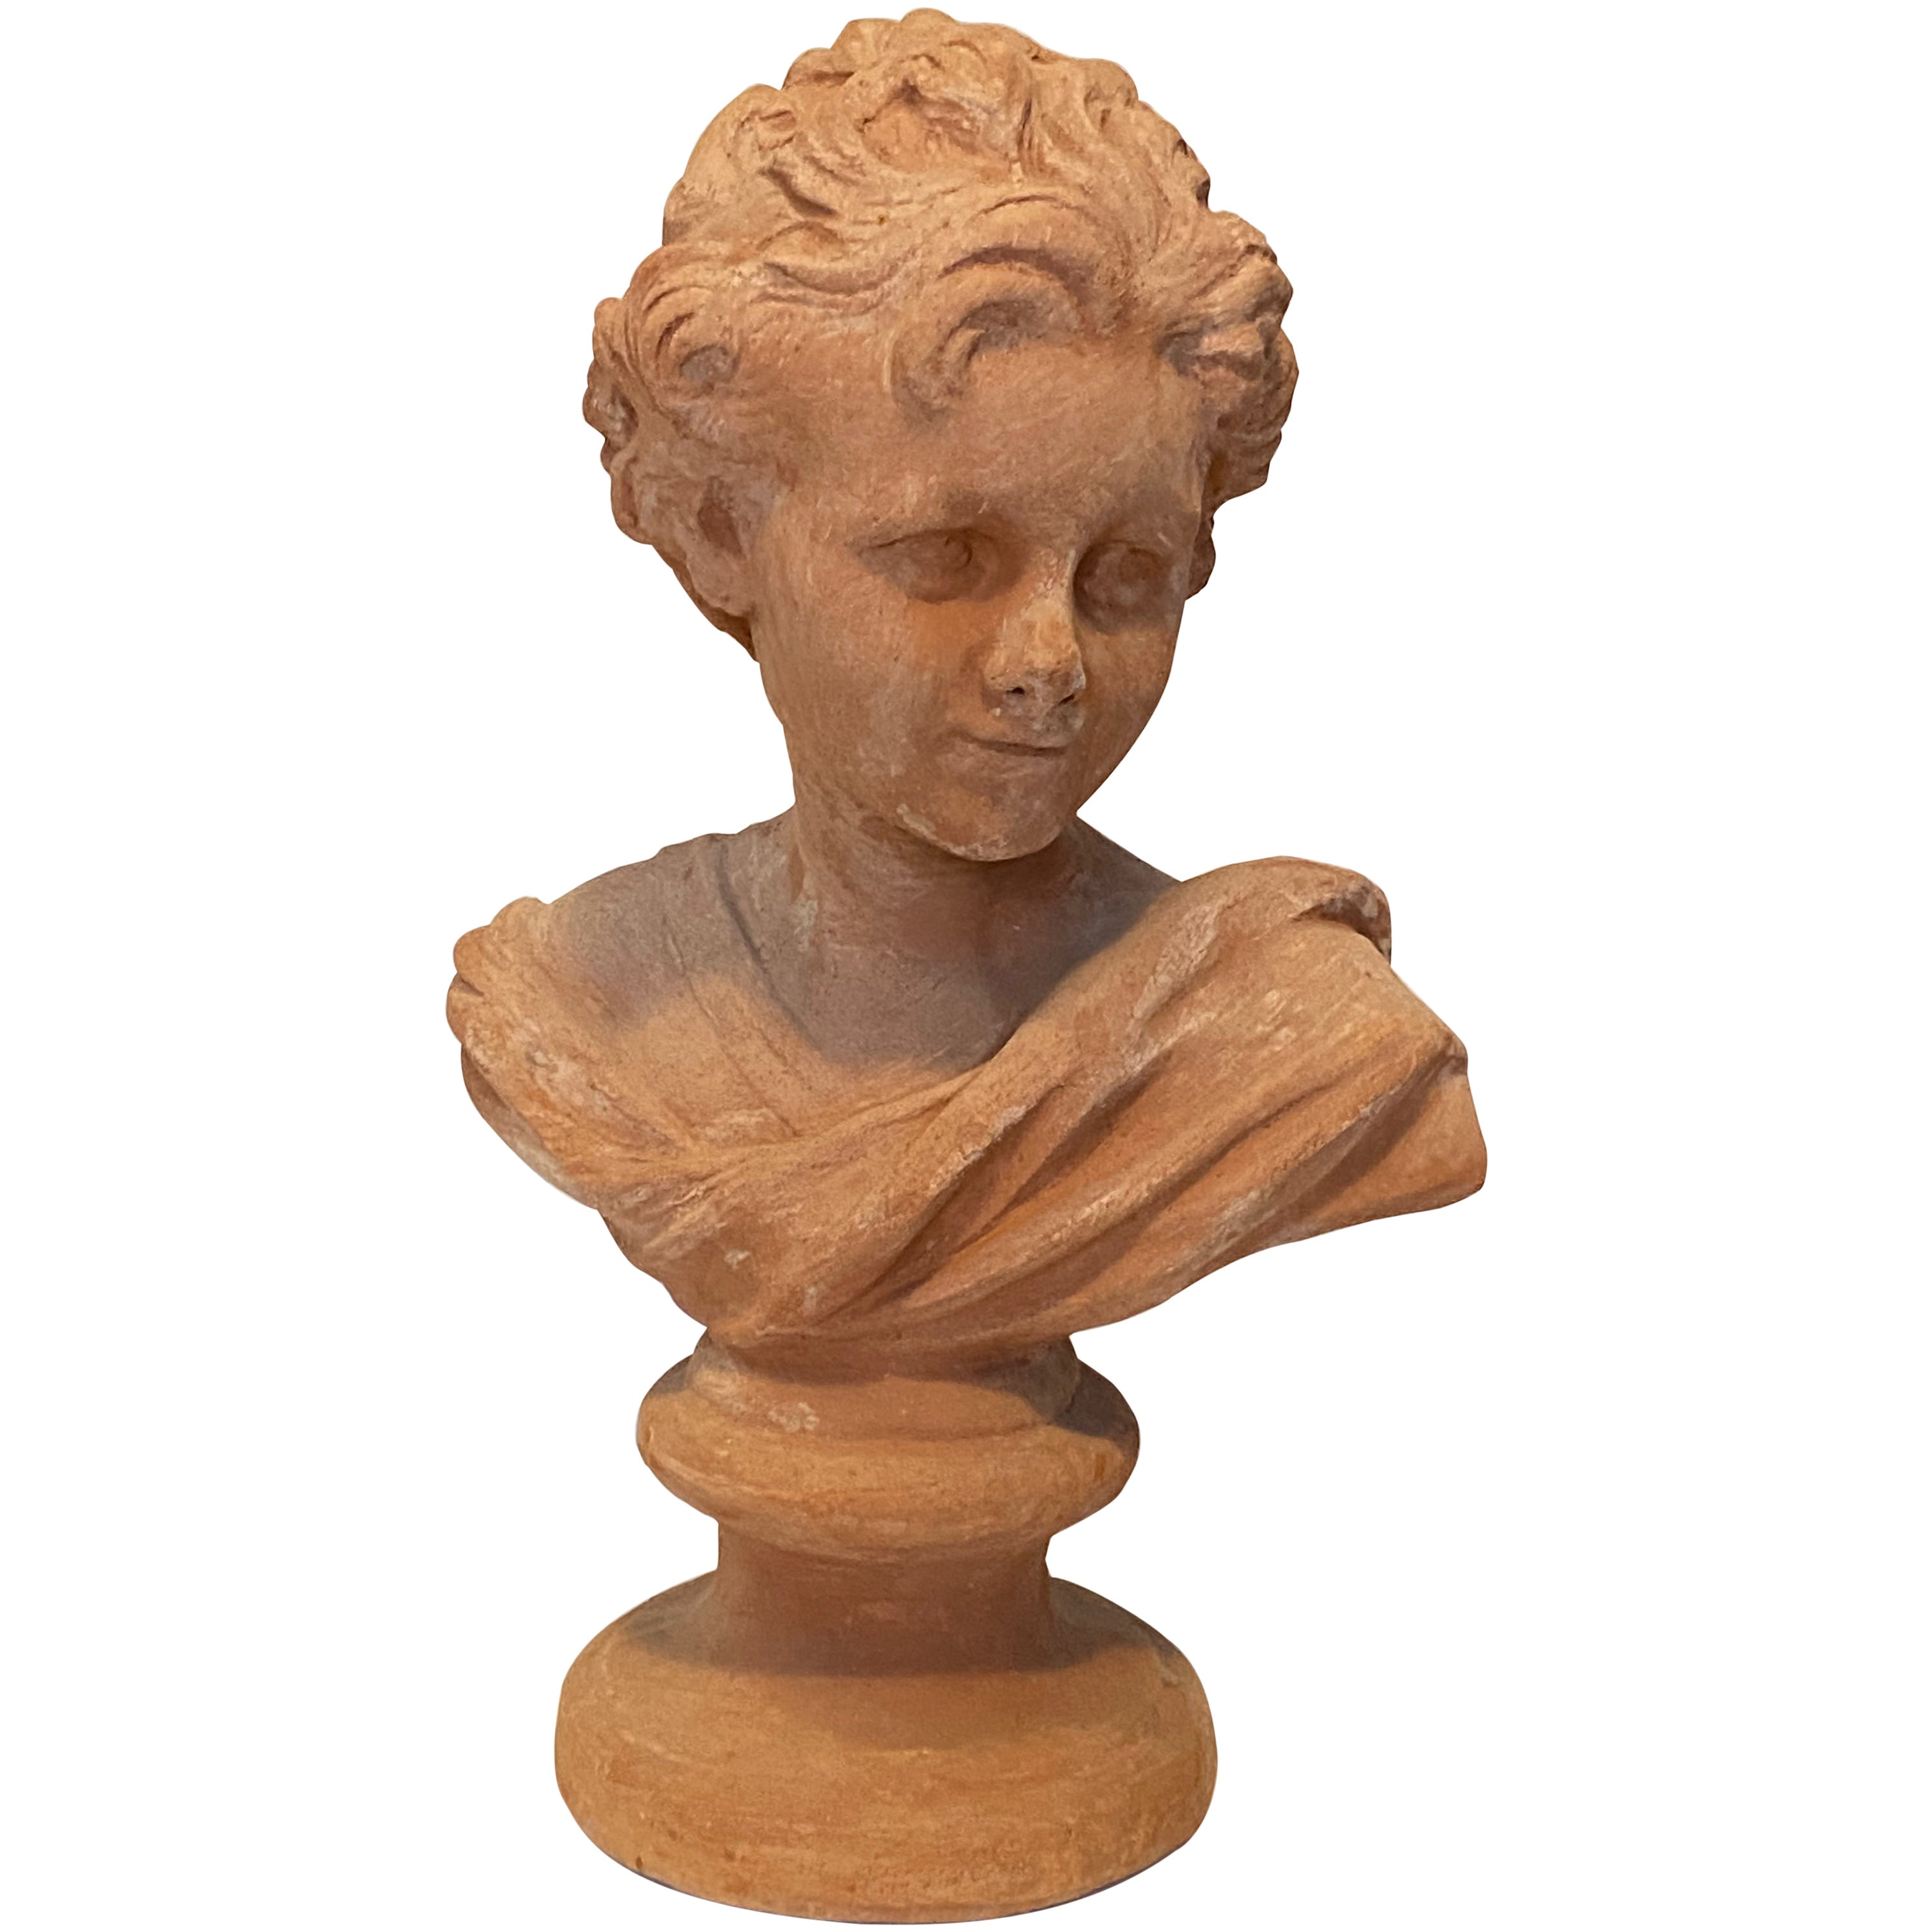 20th Century Terracotta Bust of Italian Nobility, Italy Vintage